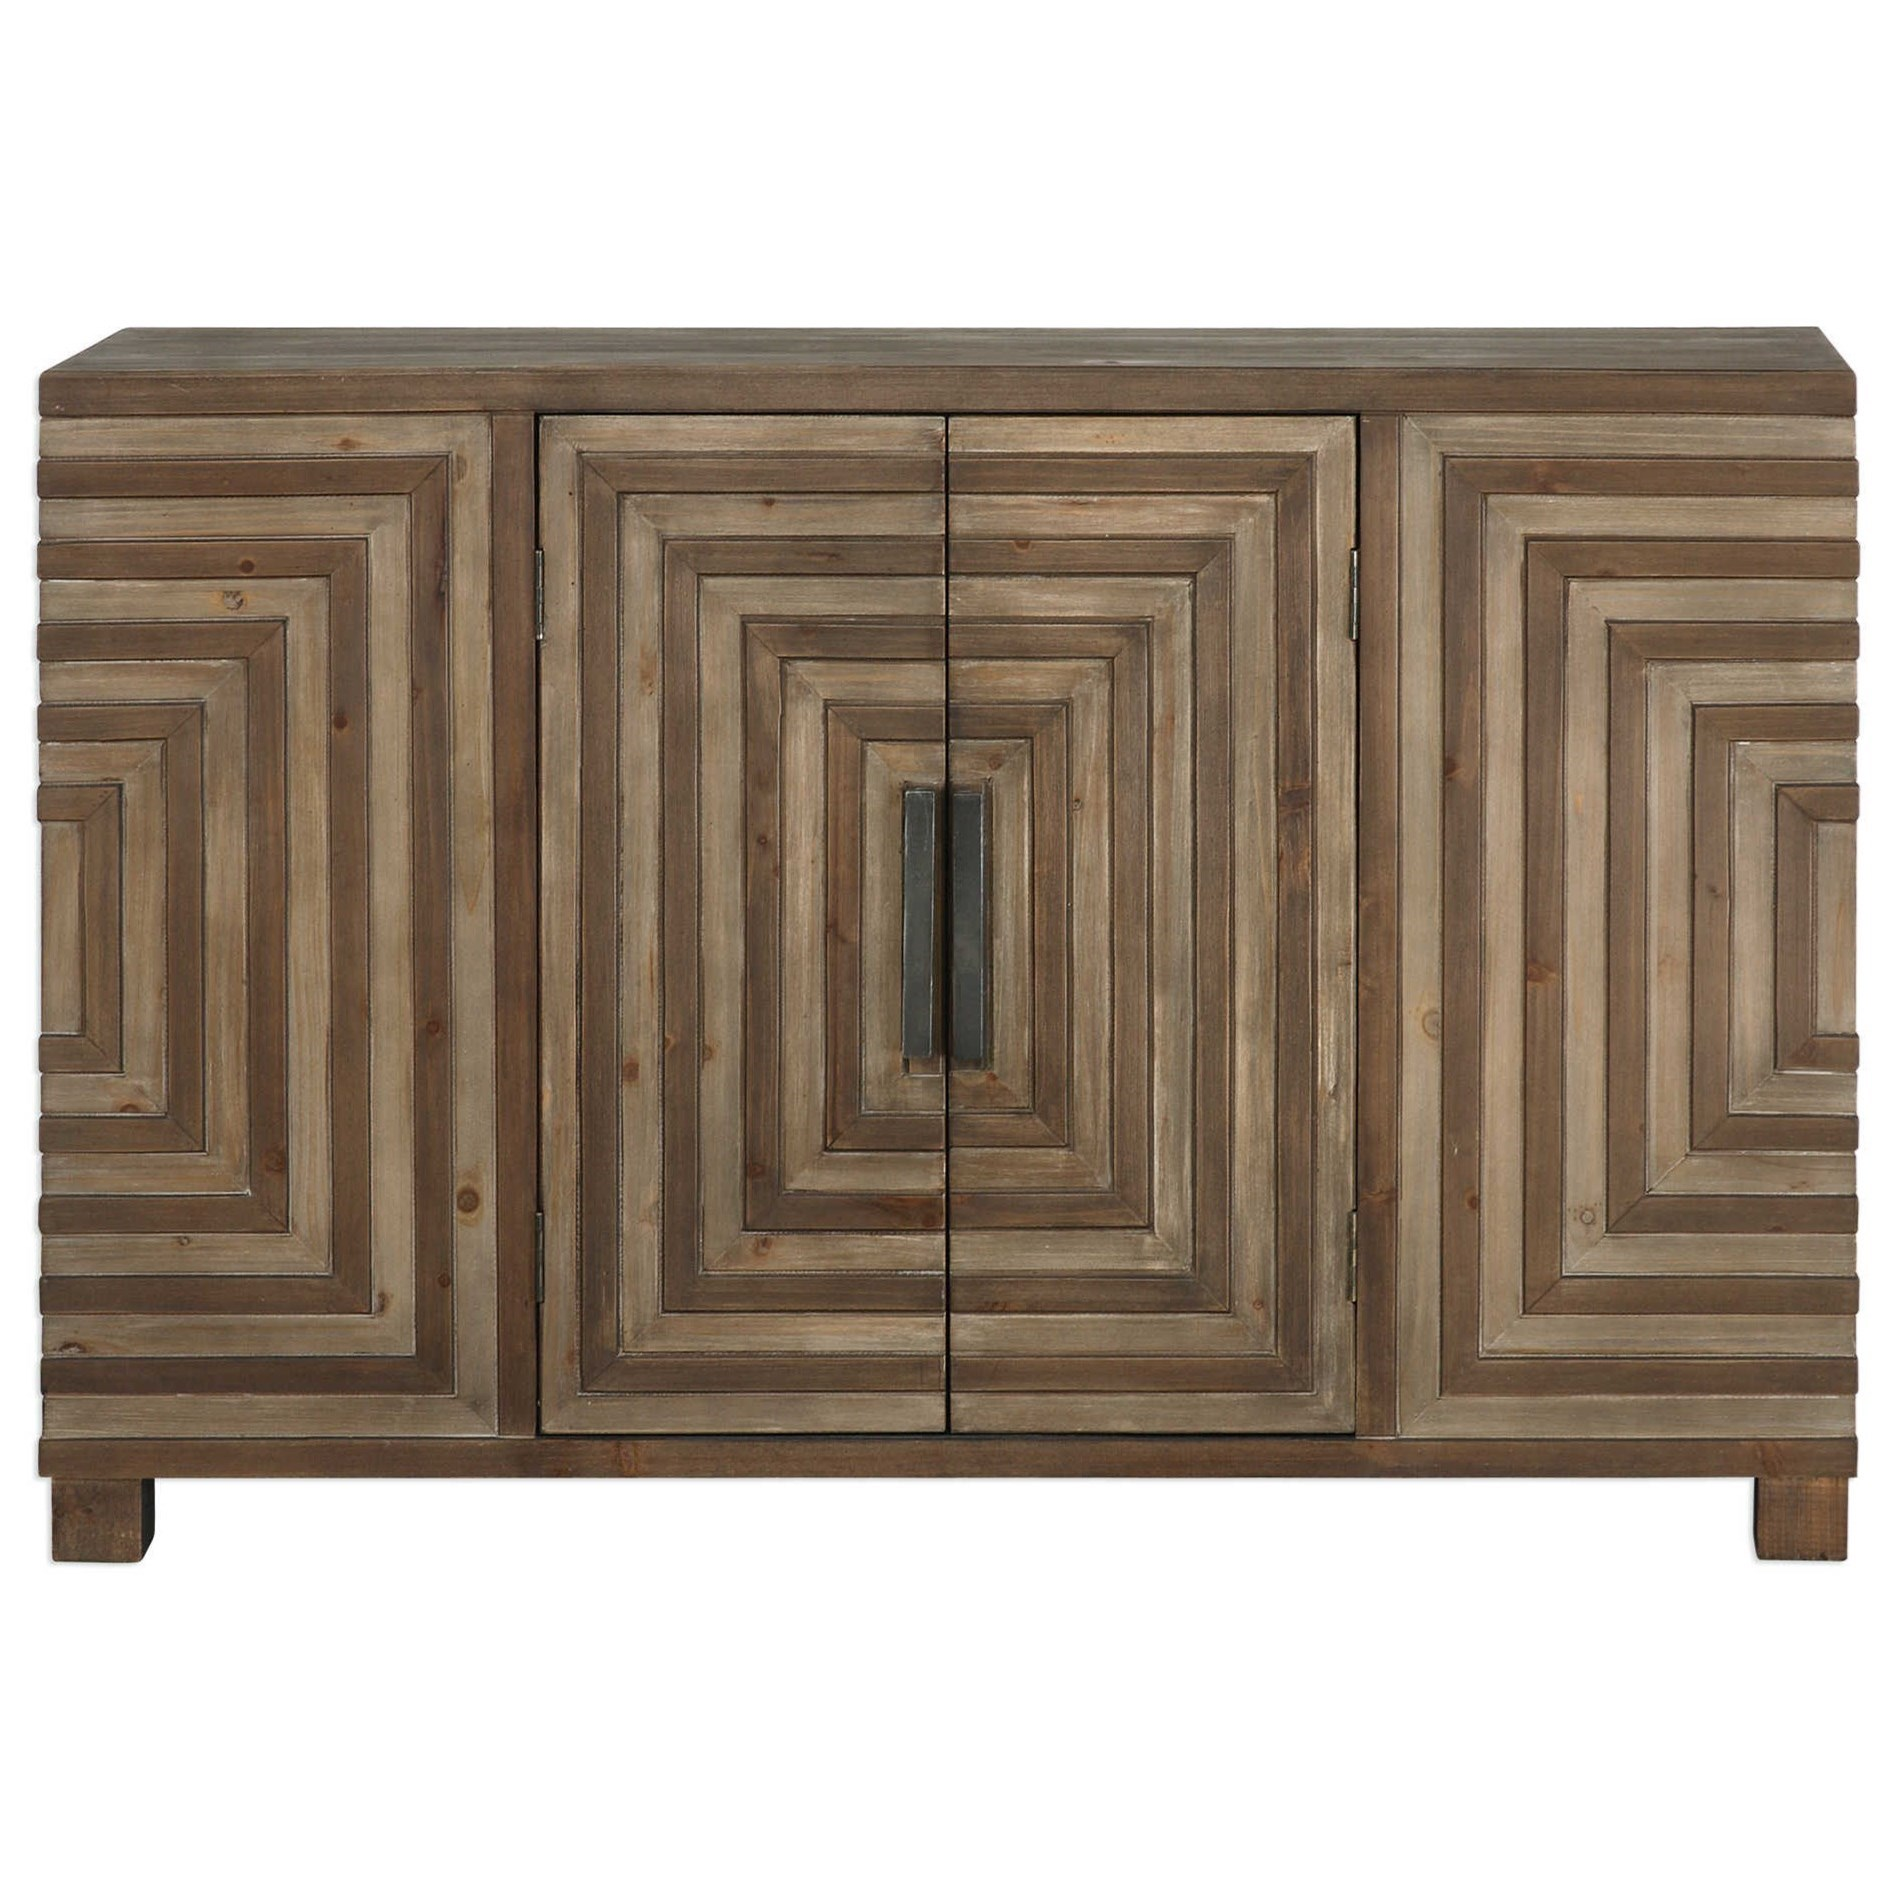 Accent Furniture - Occasional Tables Layton Geometric Console Cabinet by Uttermost at Suburban Furniture